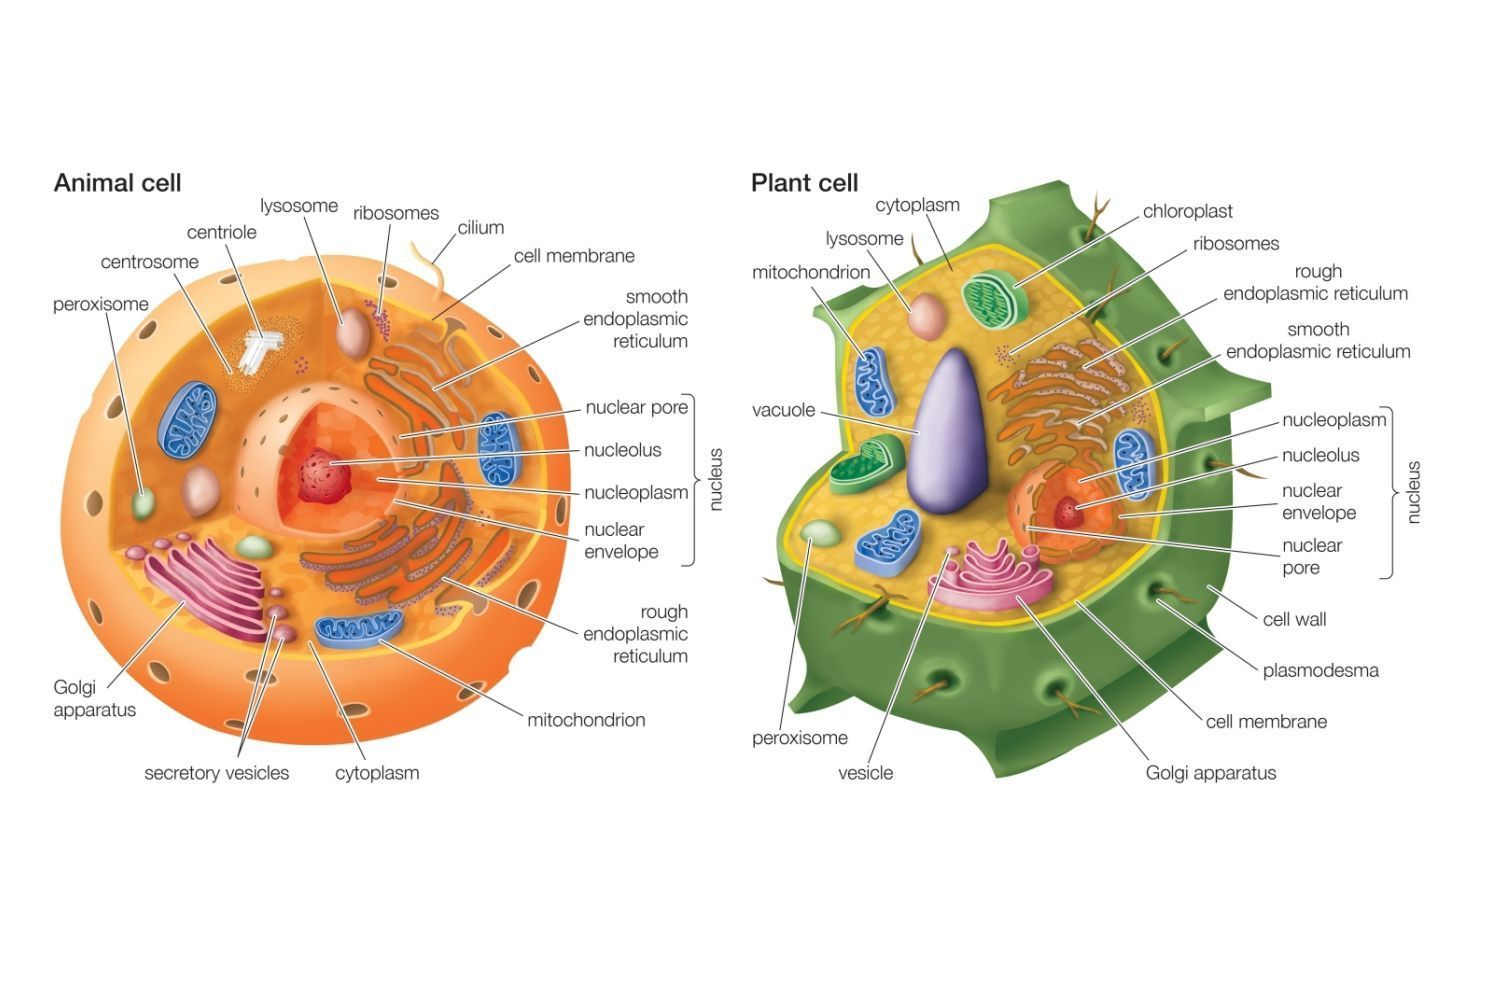 what are six similarities between plant and animal cell organelles